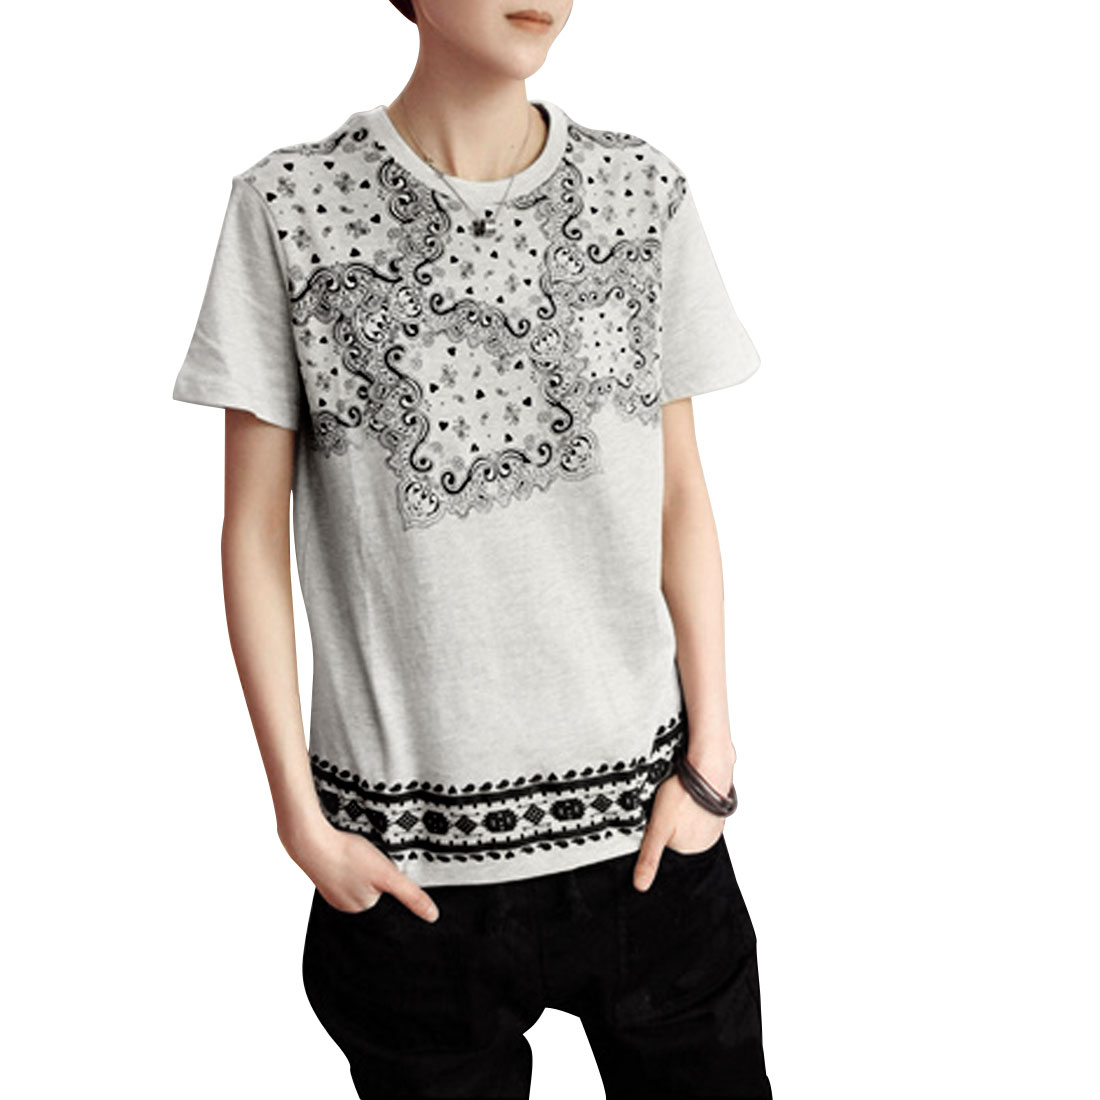 Round Neck Fashional Paisley Pattern T-Shirt Top Gray S for Men